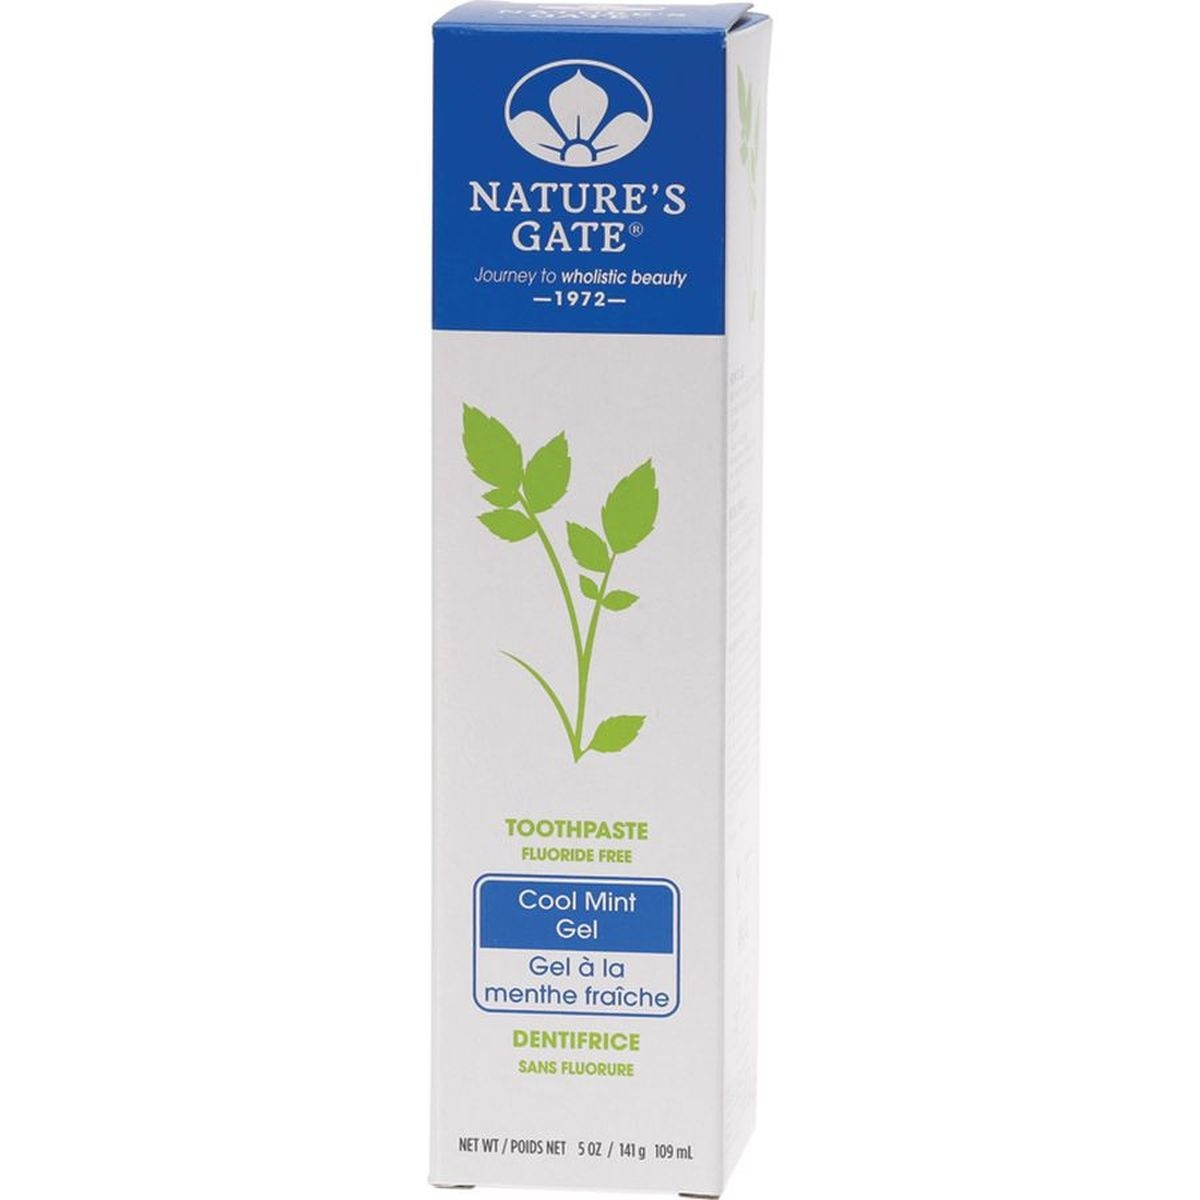 NATURE'S GATE COOL MINT GEL